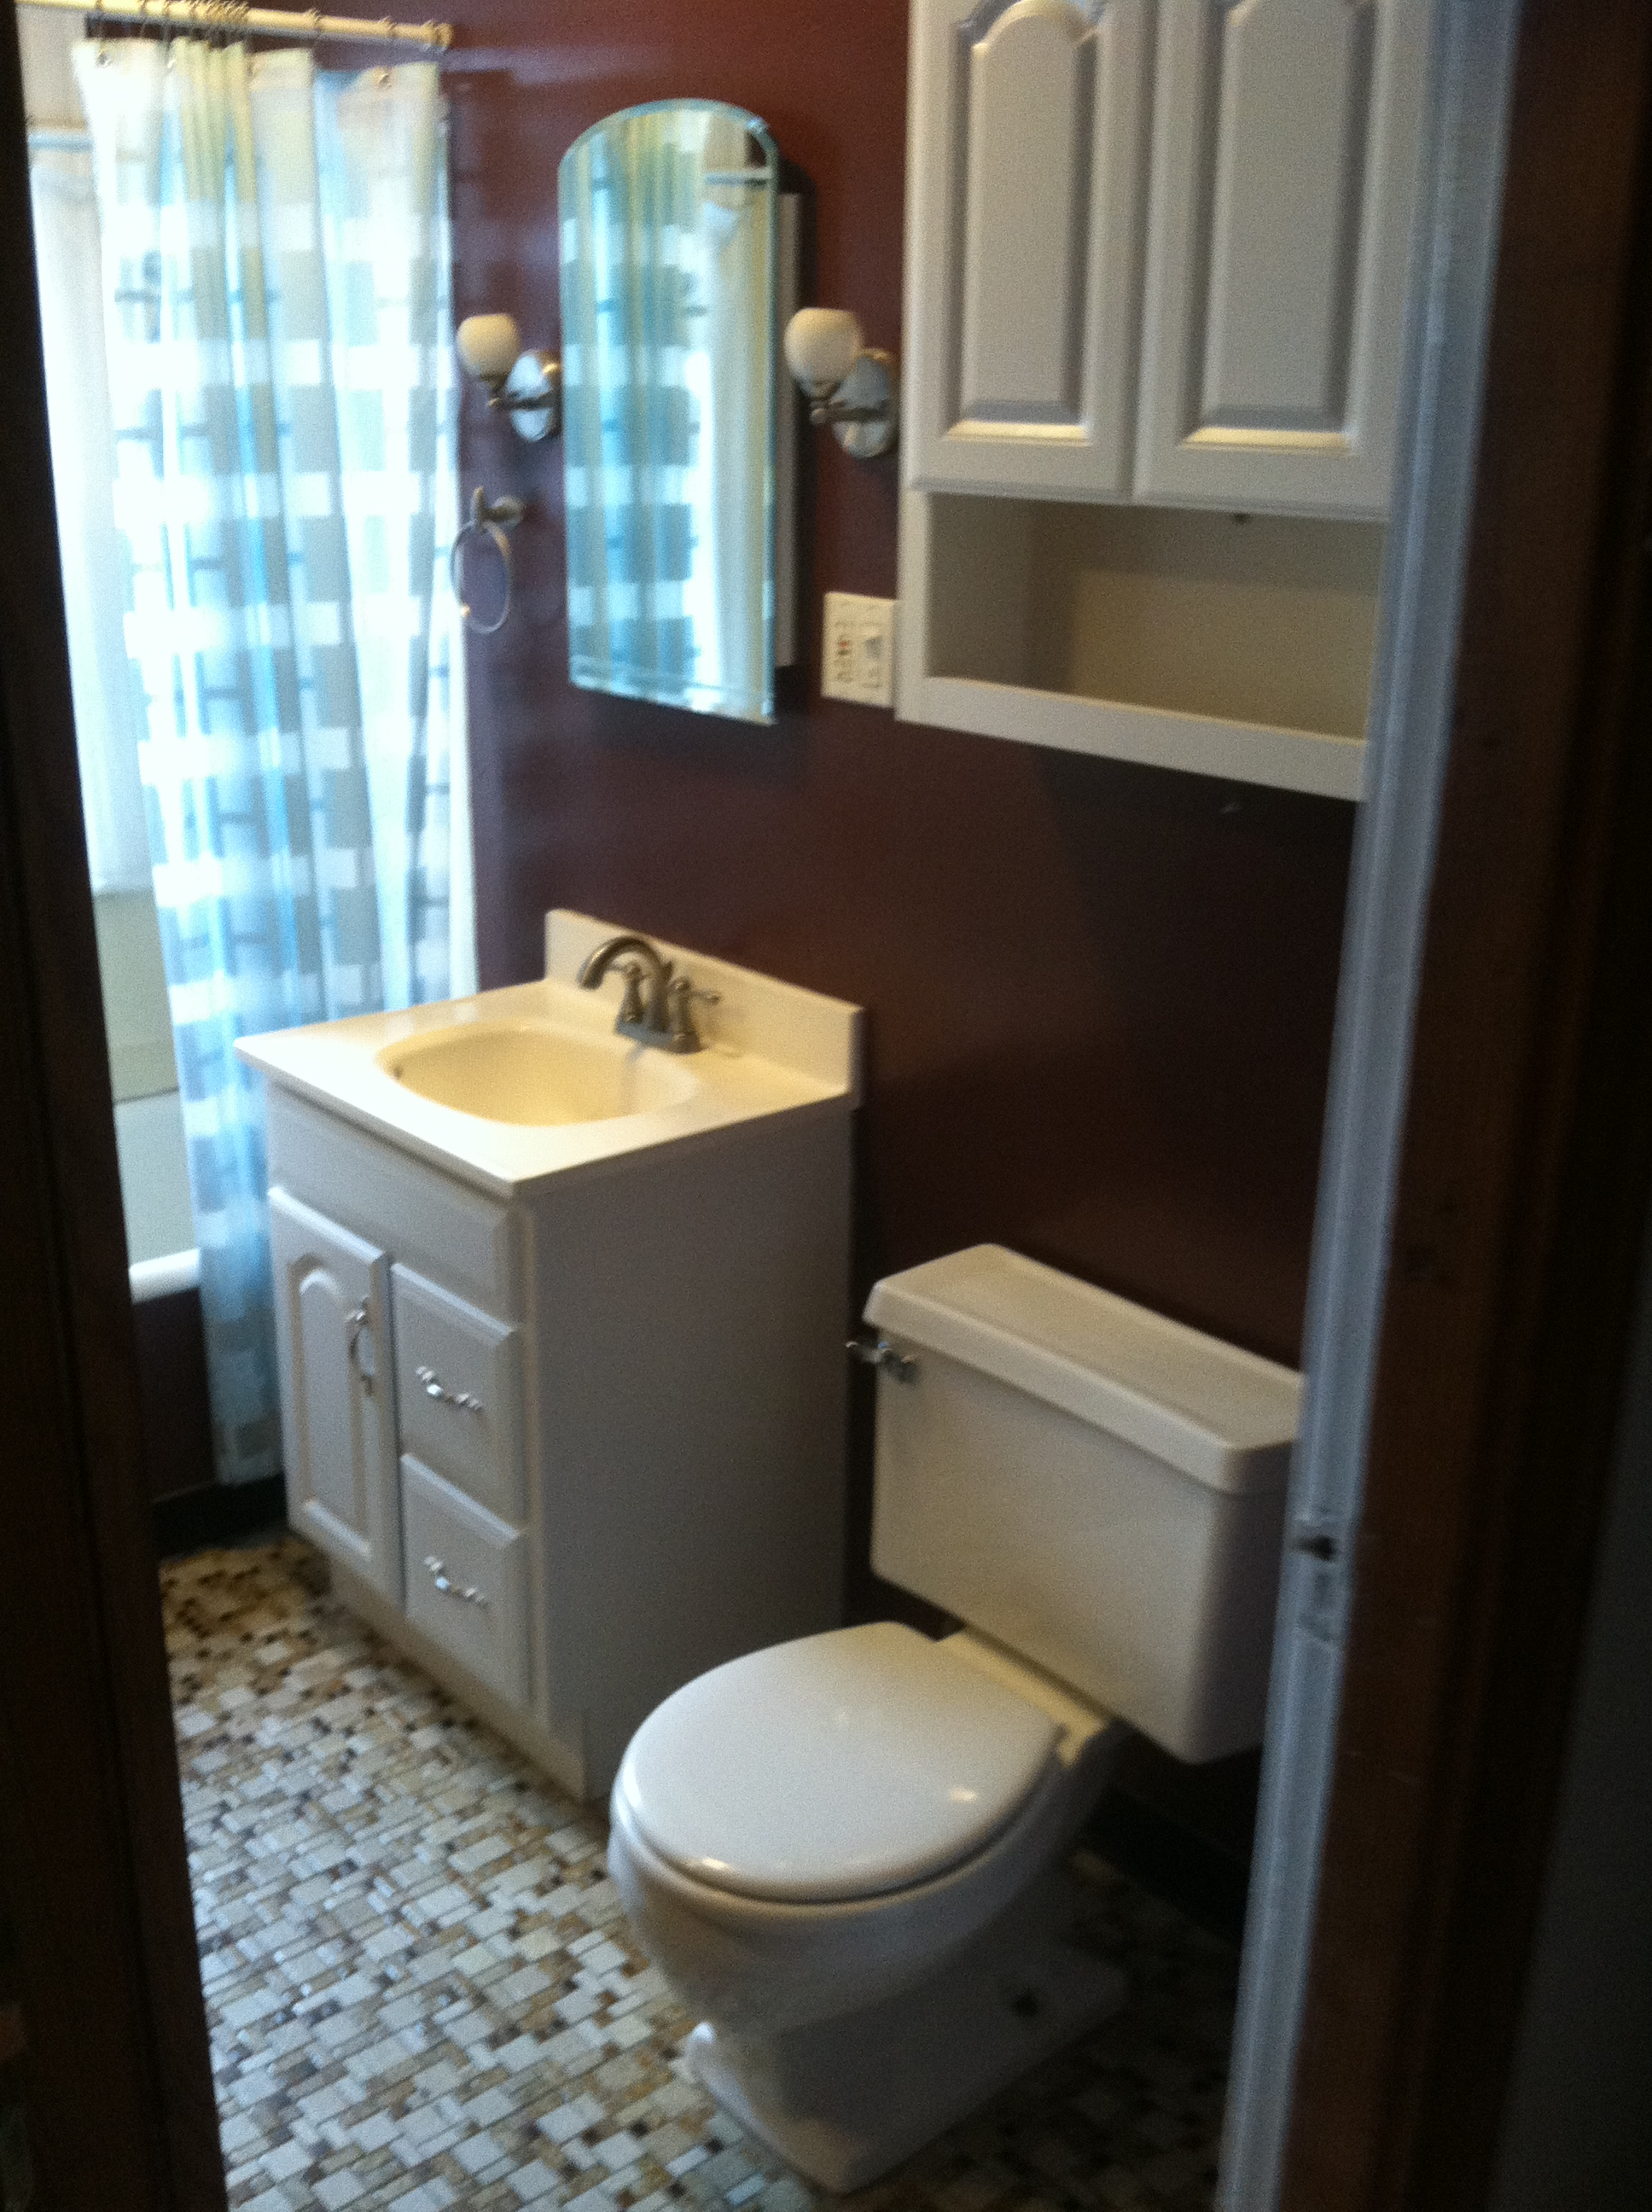 Bathroom Sinks Jamaica bathrooms: demo/rebuild, jamaica plain | henry scopa home improvements